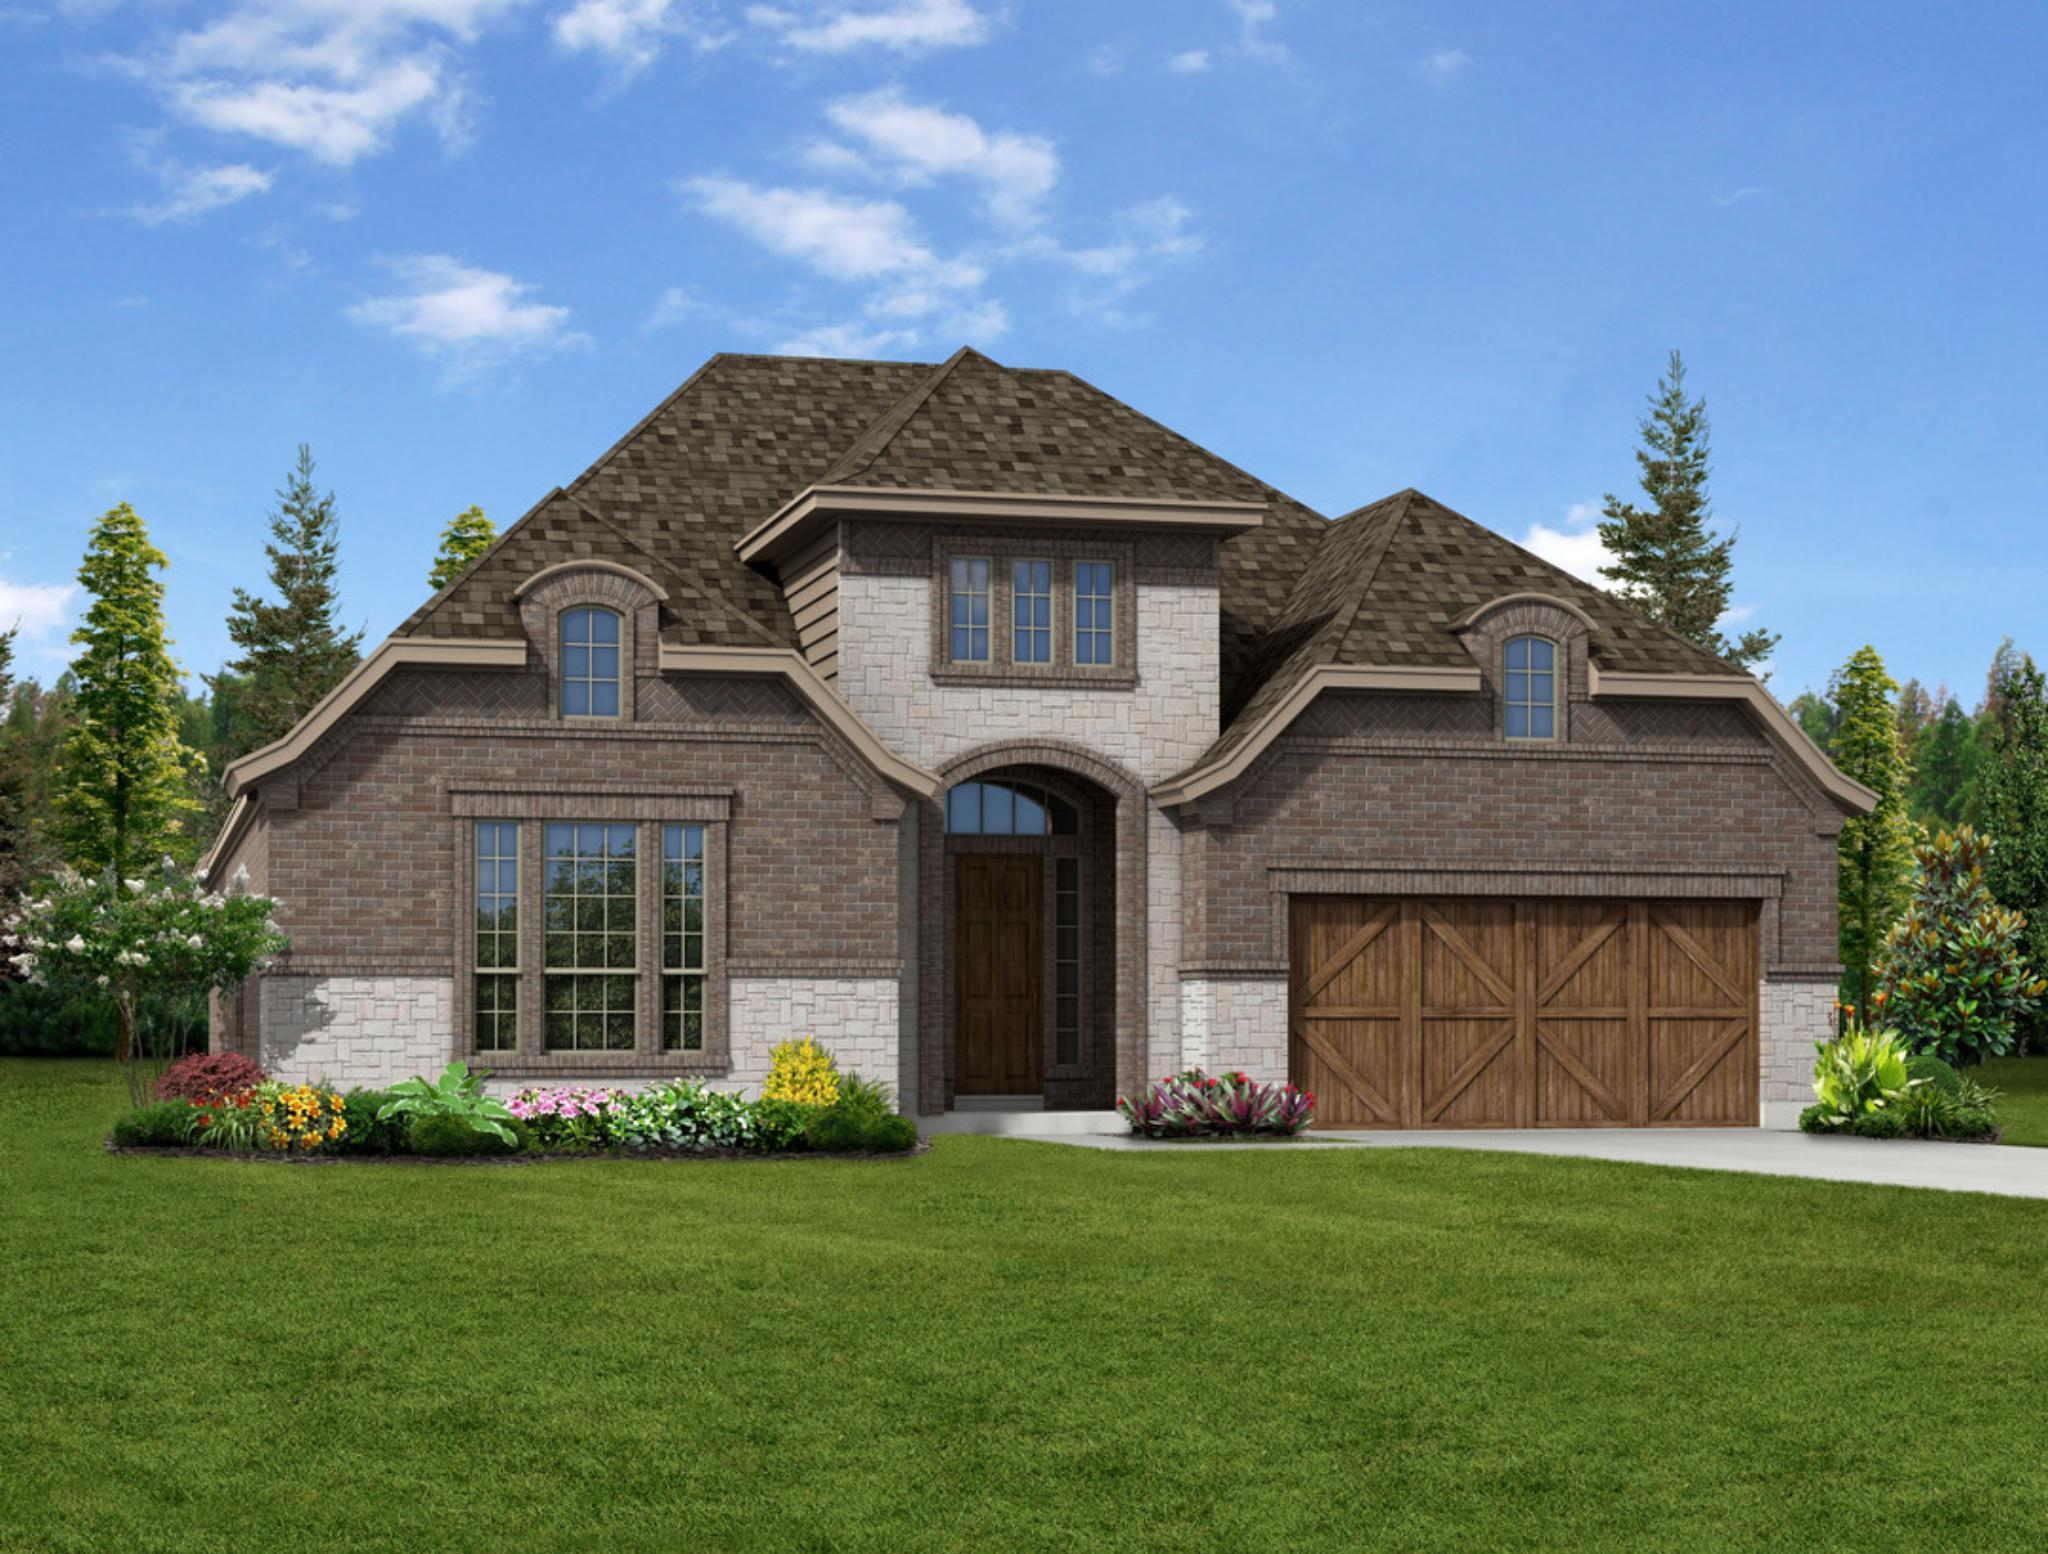 New construction homes and floor plans in princeton tx for New home source dfw